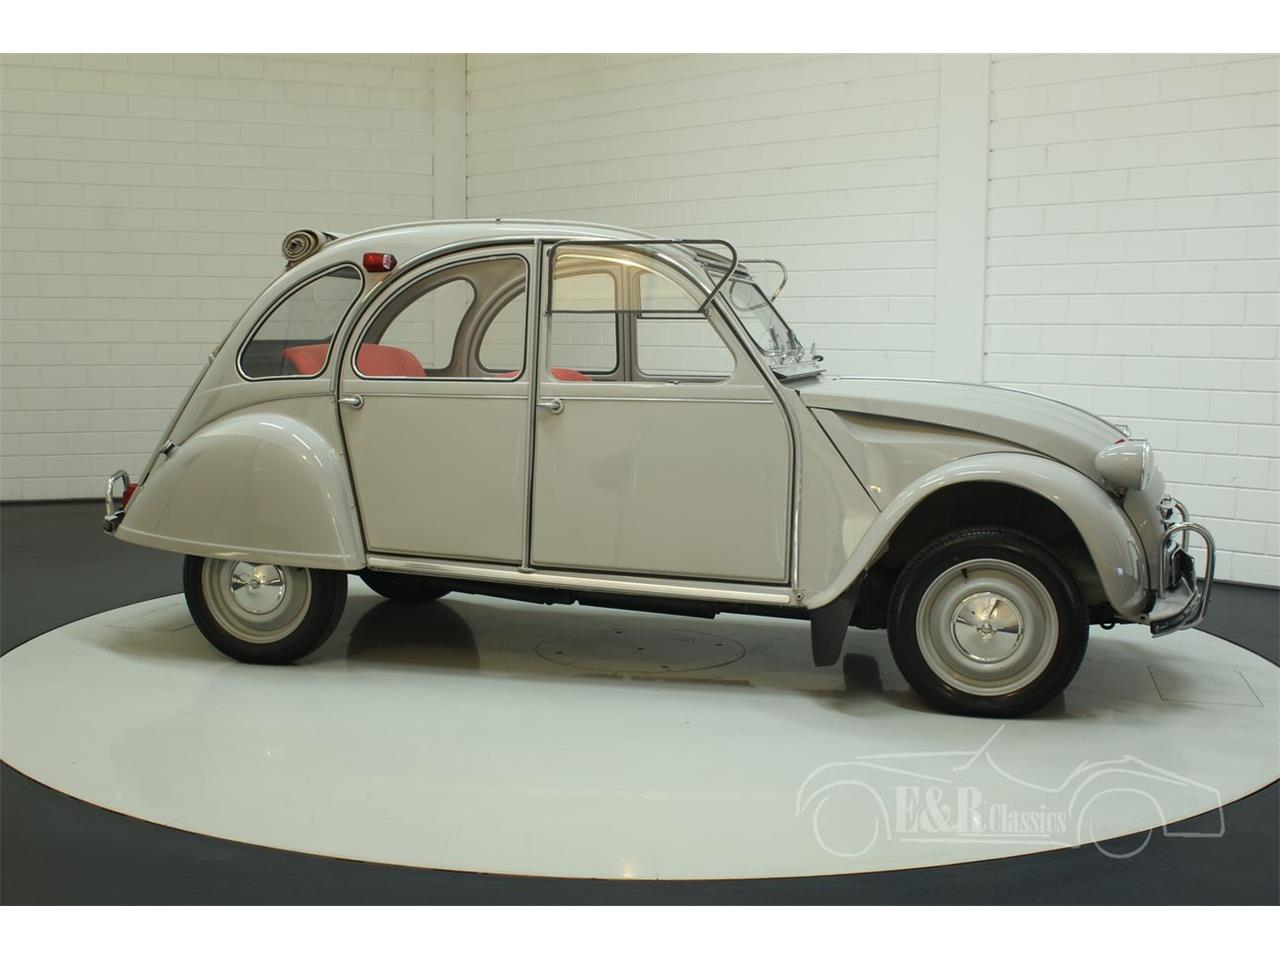 Large Picture of 1966 Citroen 2CV located in Waalwijk - Keine Angabe - - $22,550.00 - PGSV